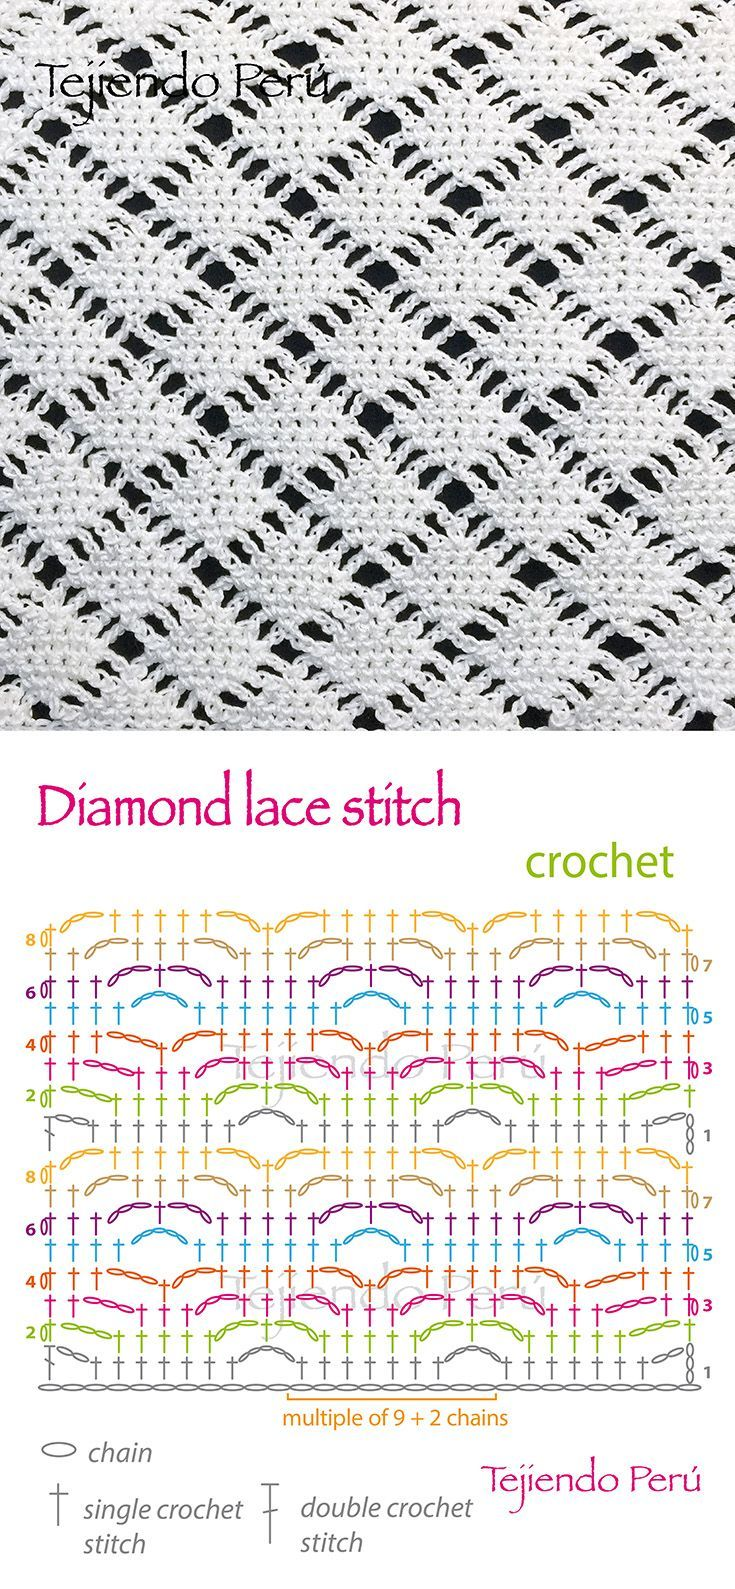 Crochet stitches diagrams example electrical wiring diagram crochet diamond lace stitch diagram crochet puntos y tejidos rh pinterest co uk crochet stitch diagram ccuart